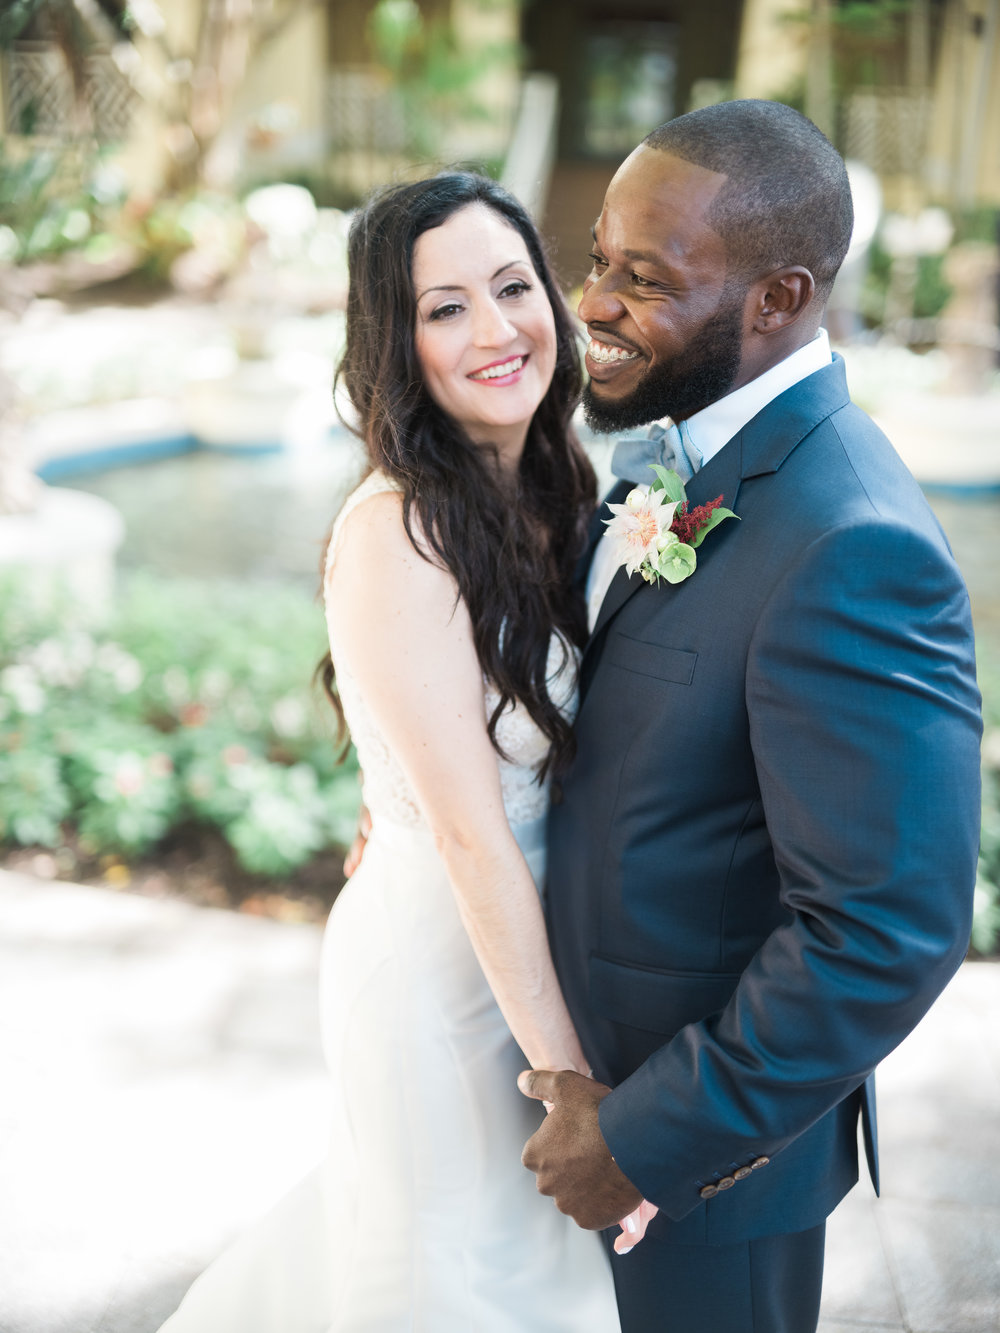 Jet Set Wed :: A Blooming Modern Brunch at Hyatt Regency Coconut Point :: Aly & Matt